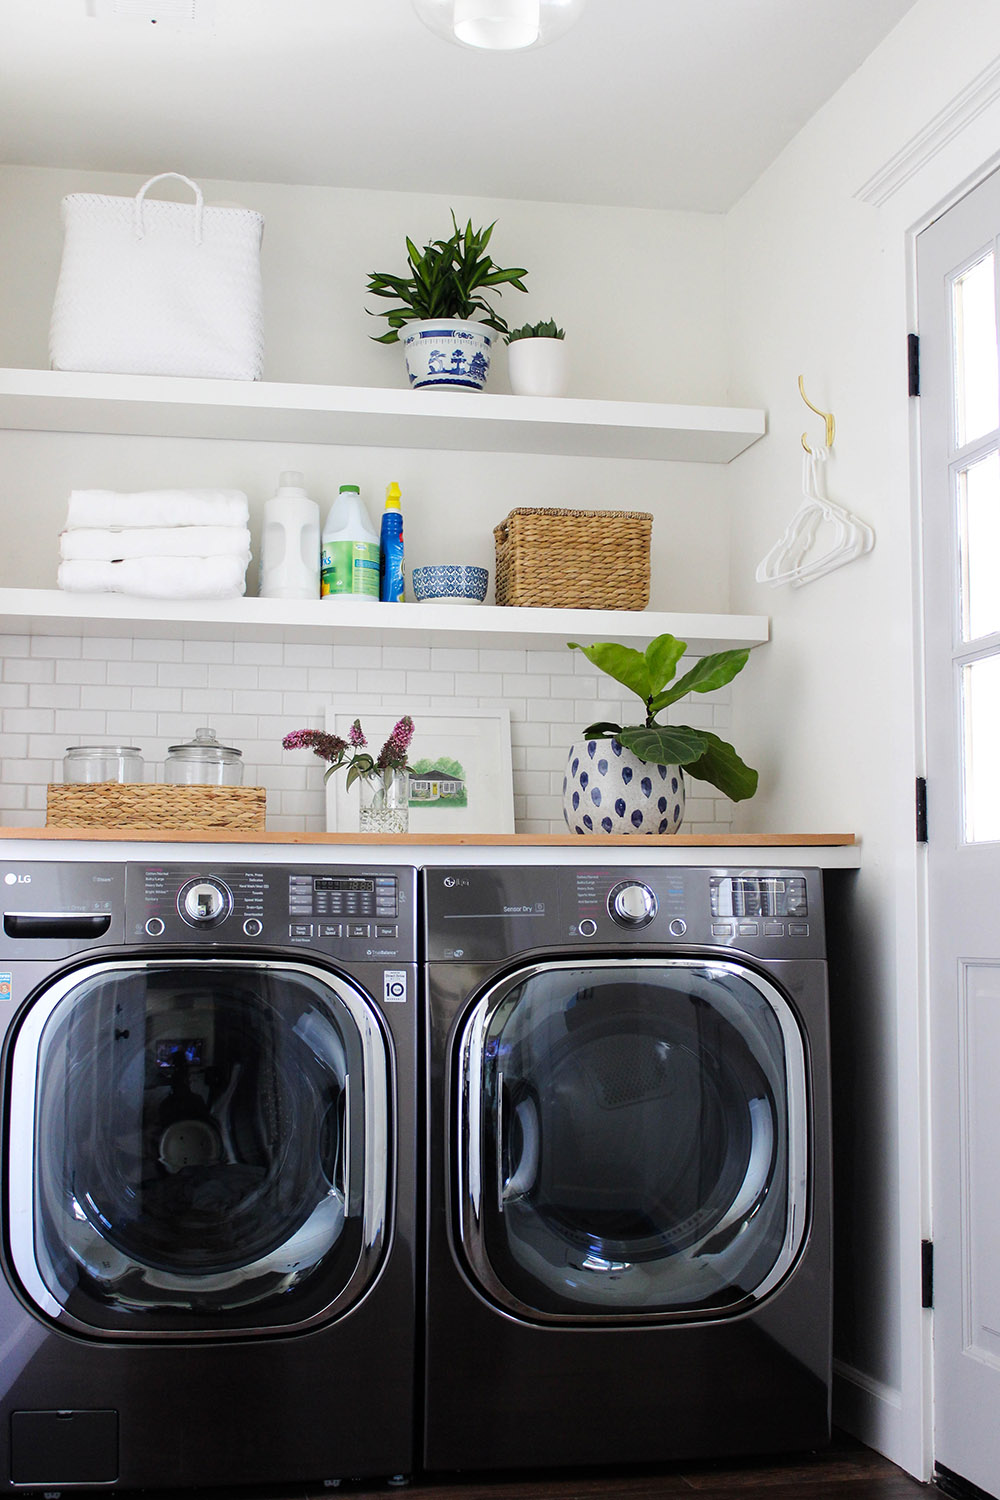 A laundry room with a new LG front load washing machine and dryer.